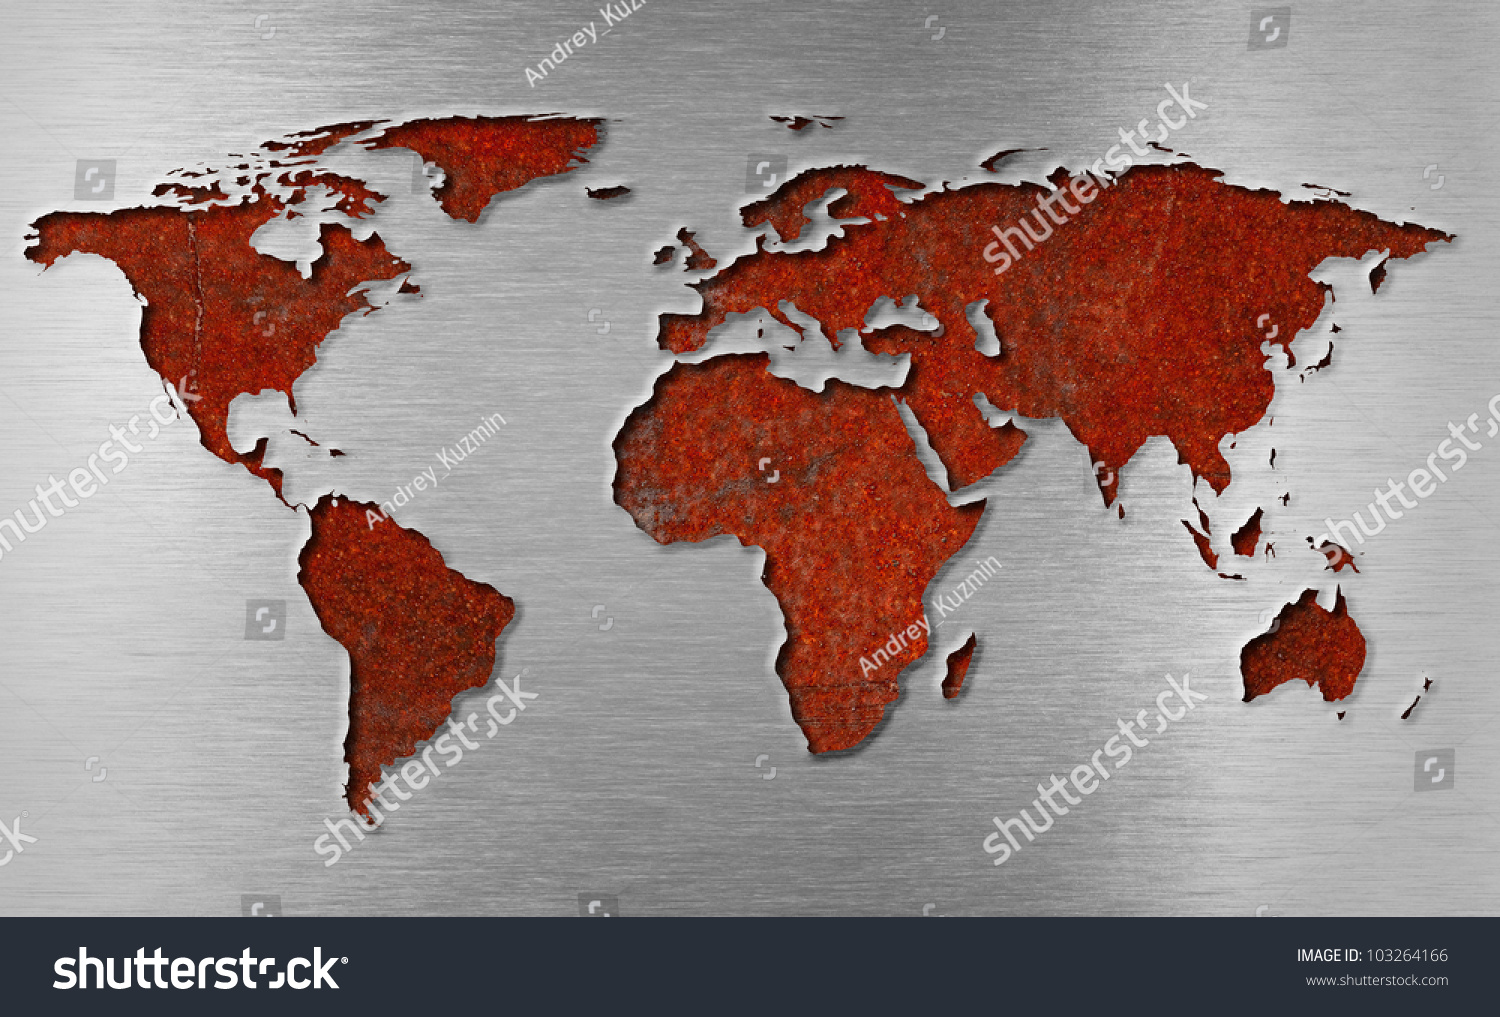 rusty metal world map concept stock photo 103264166 shutterstock. Black Bedroom Furniture Sets. Home Design Ideas